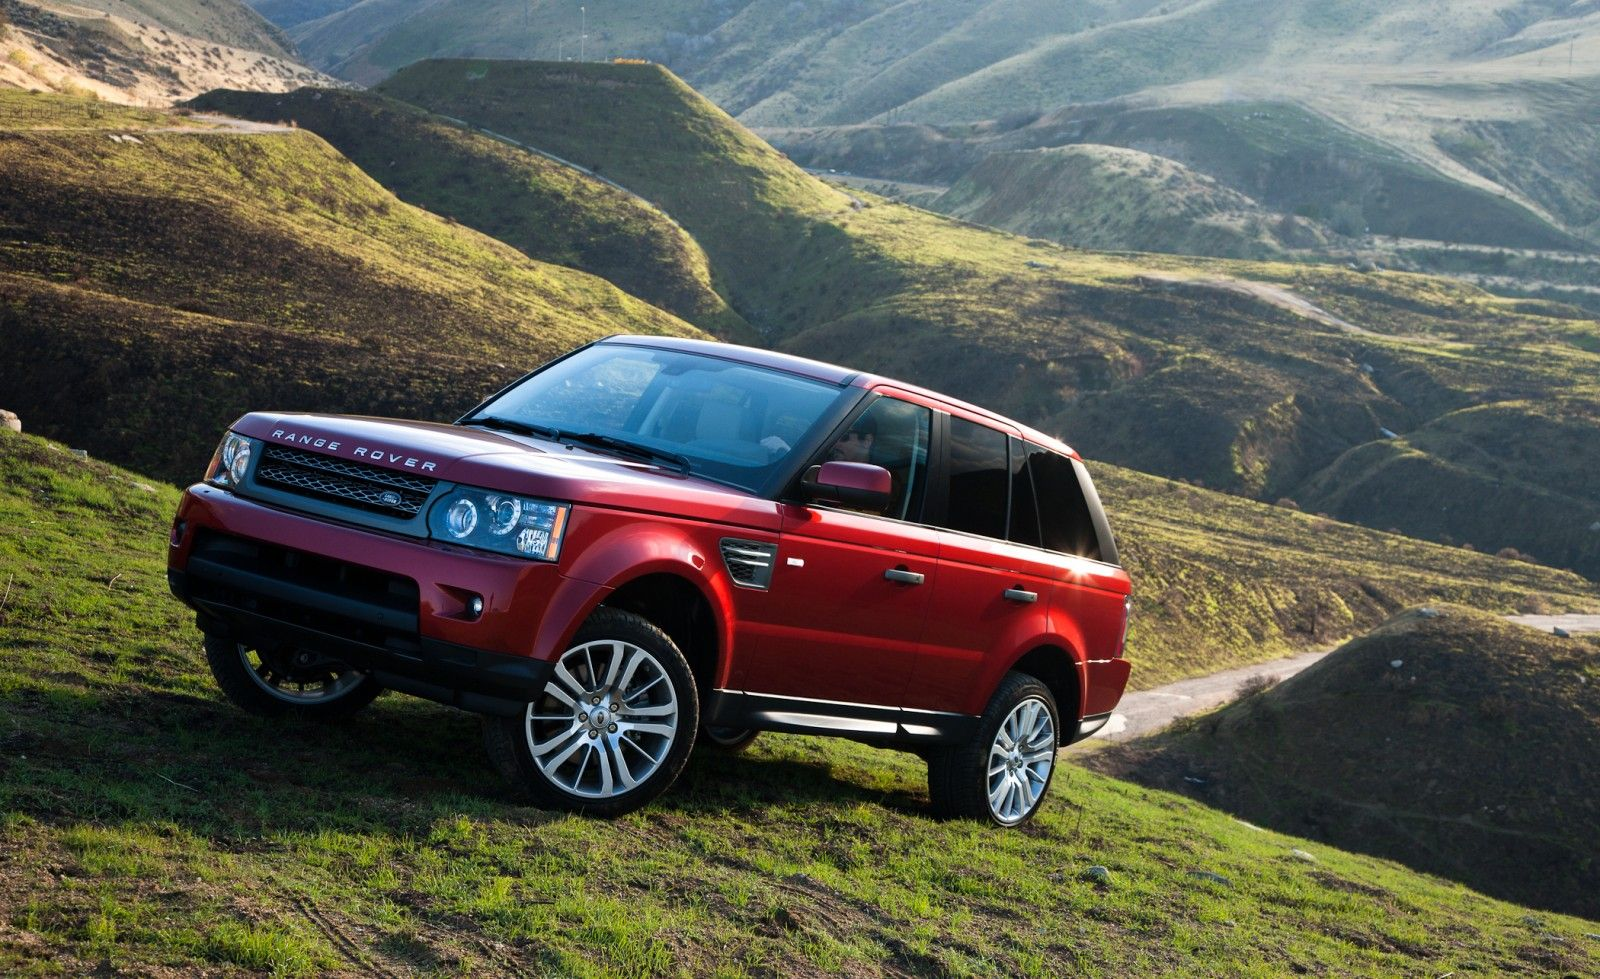 2017 land rover range rover supercharged review truckszilla pinterest range rover supercharged range rovers and land rovers